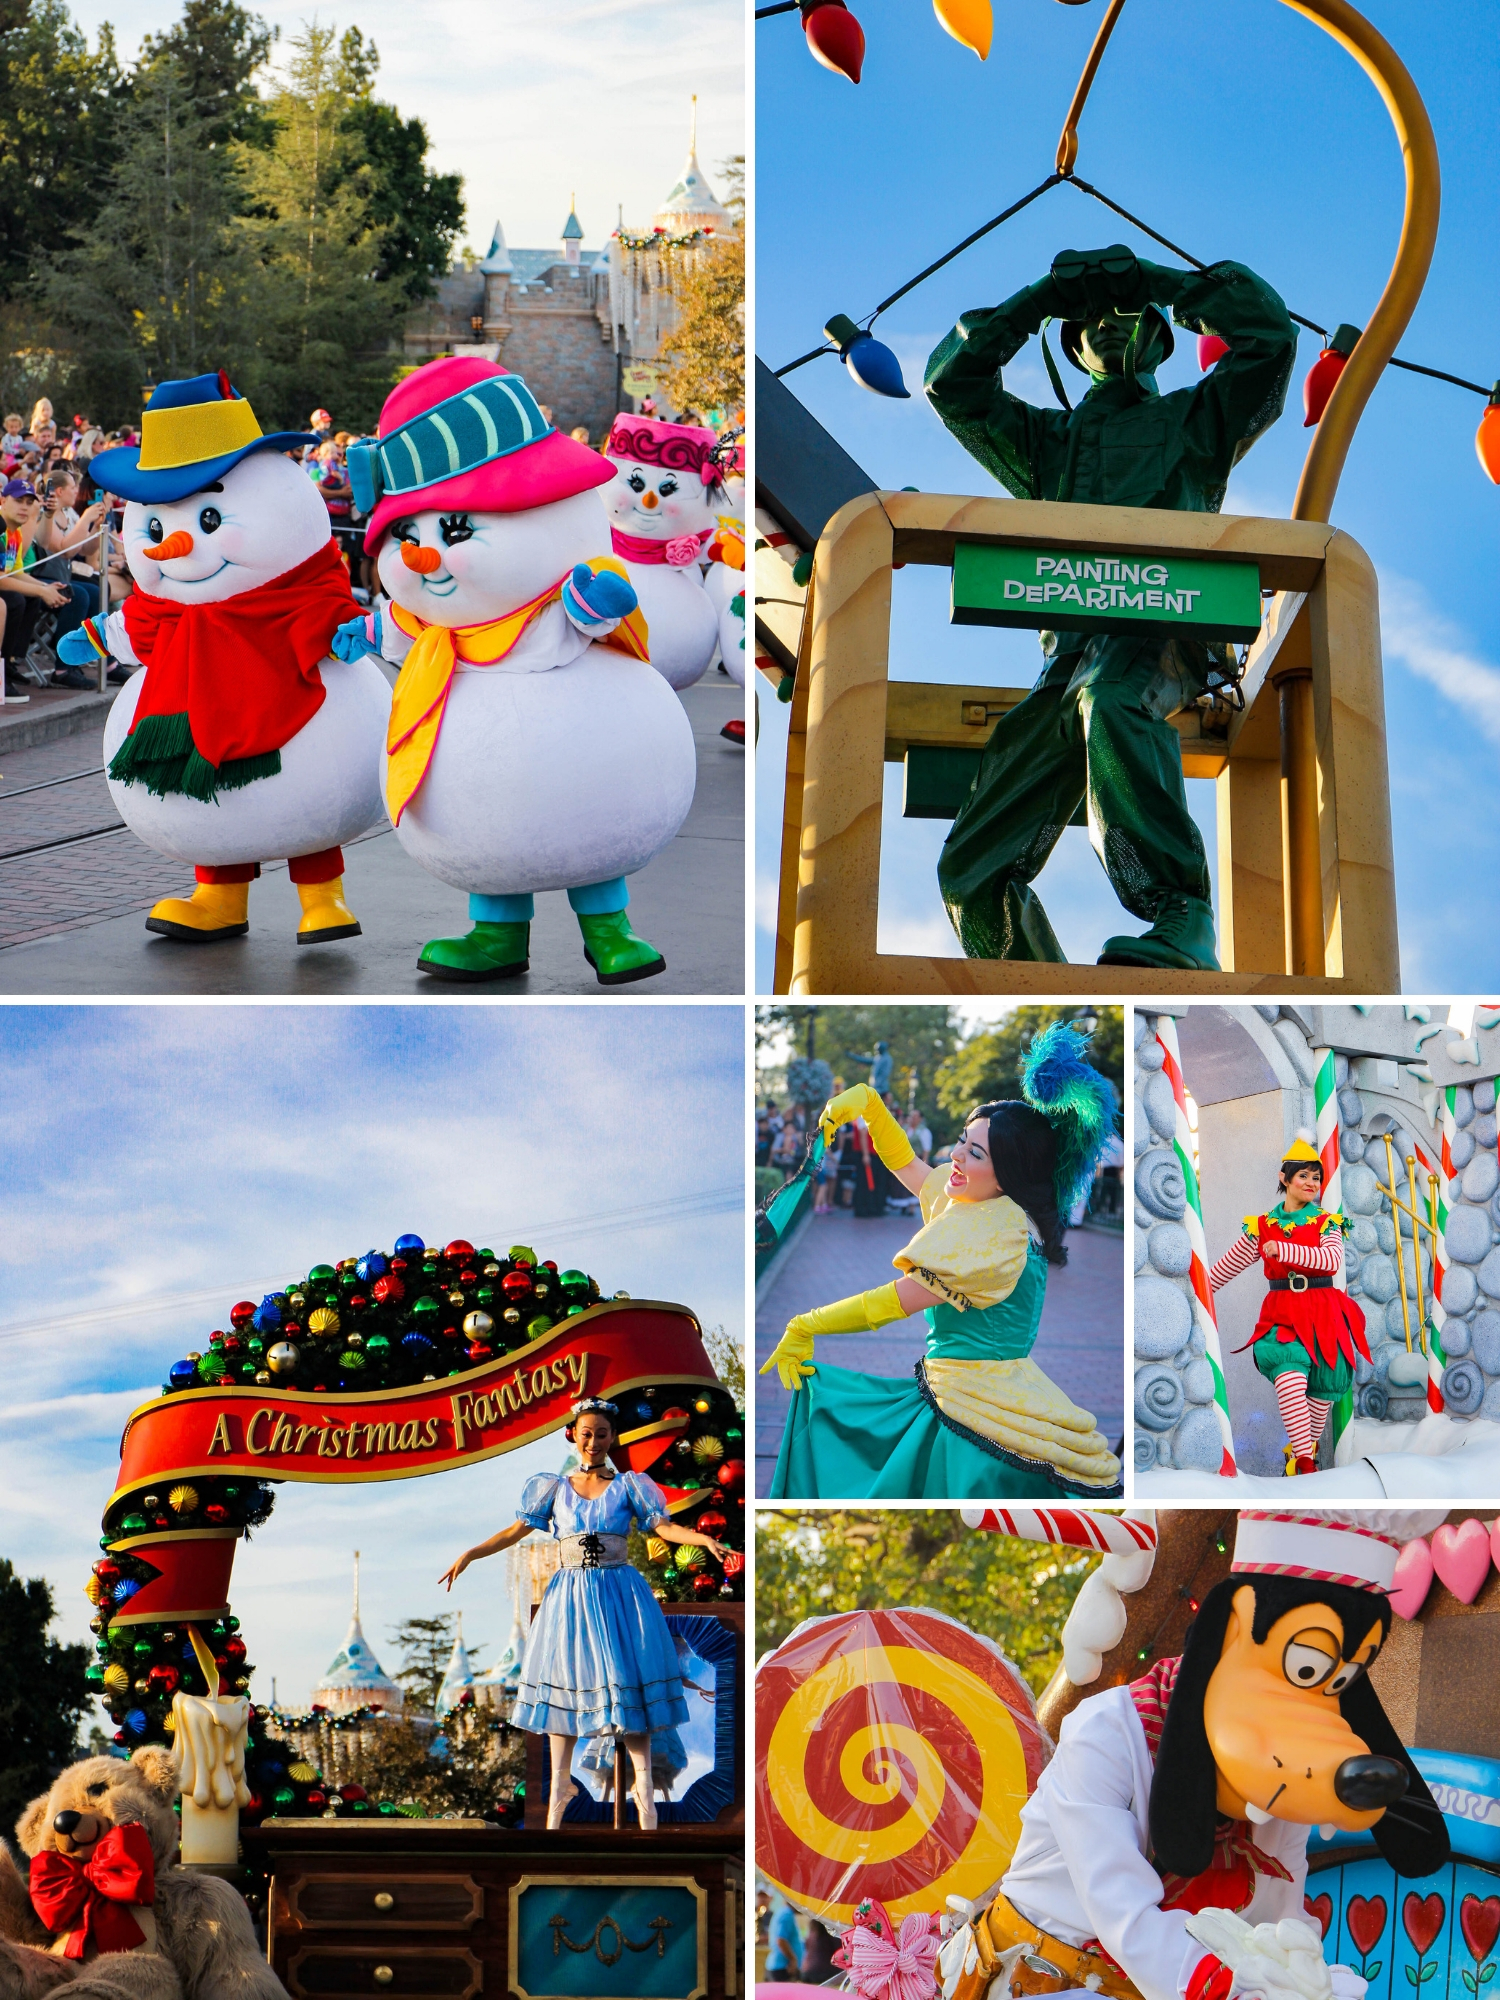 Headed to Disneyland Christmas? The Christmas Fantasy Parade is a MUST SEE!